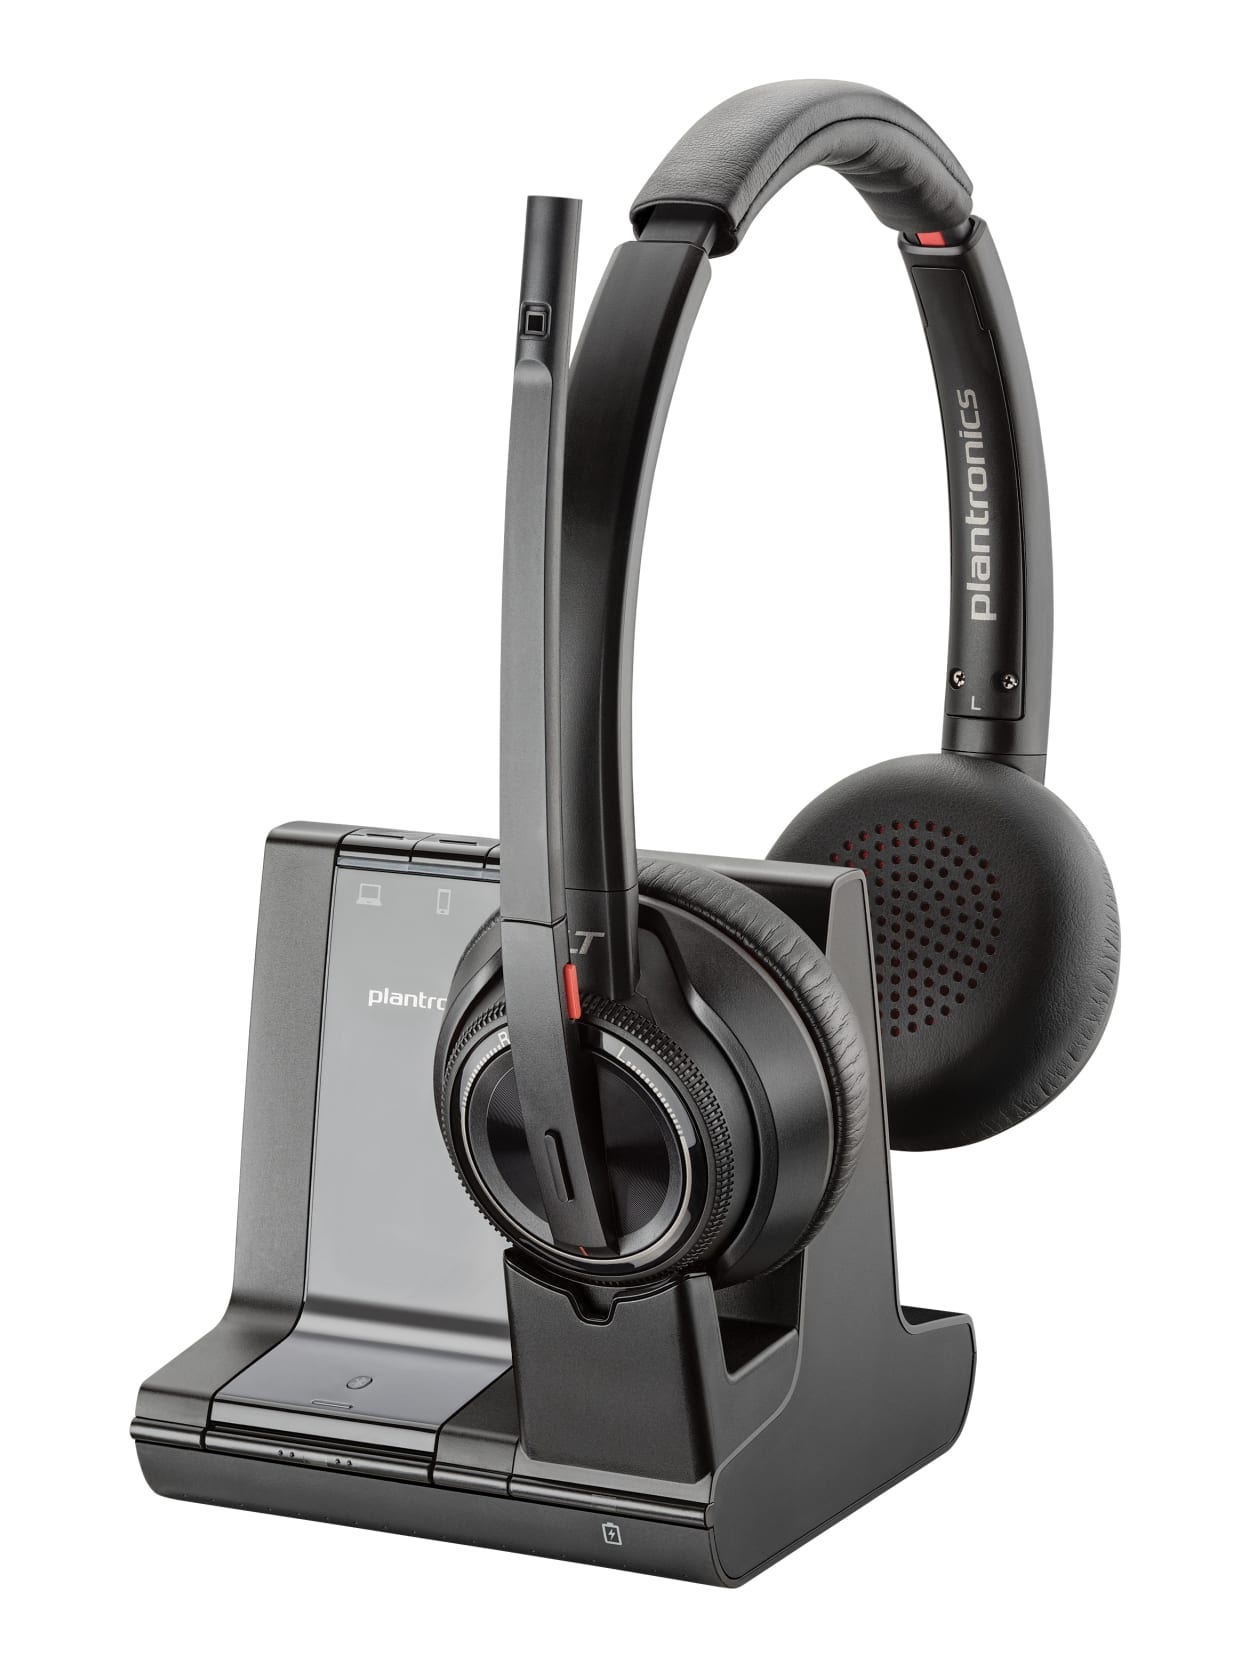 Plantronics Savi 8200 Series Wireless Dect Headset System Stereo Wireless Bluetoothdect 6 0 590 6 Ft 32 Ohm 20 Hz 20 Khz Over The Head Binaural Supra Aural Noise Cancelling Microphone Noise Canceling Black Office Depot